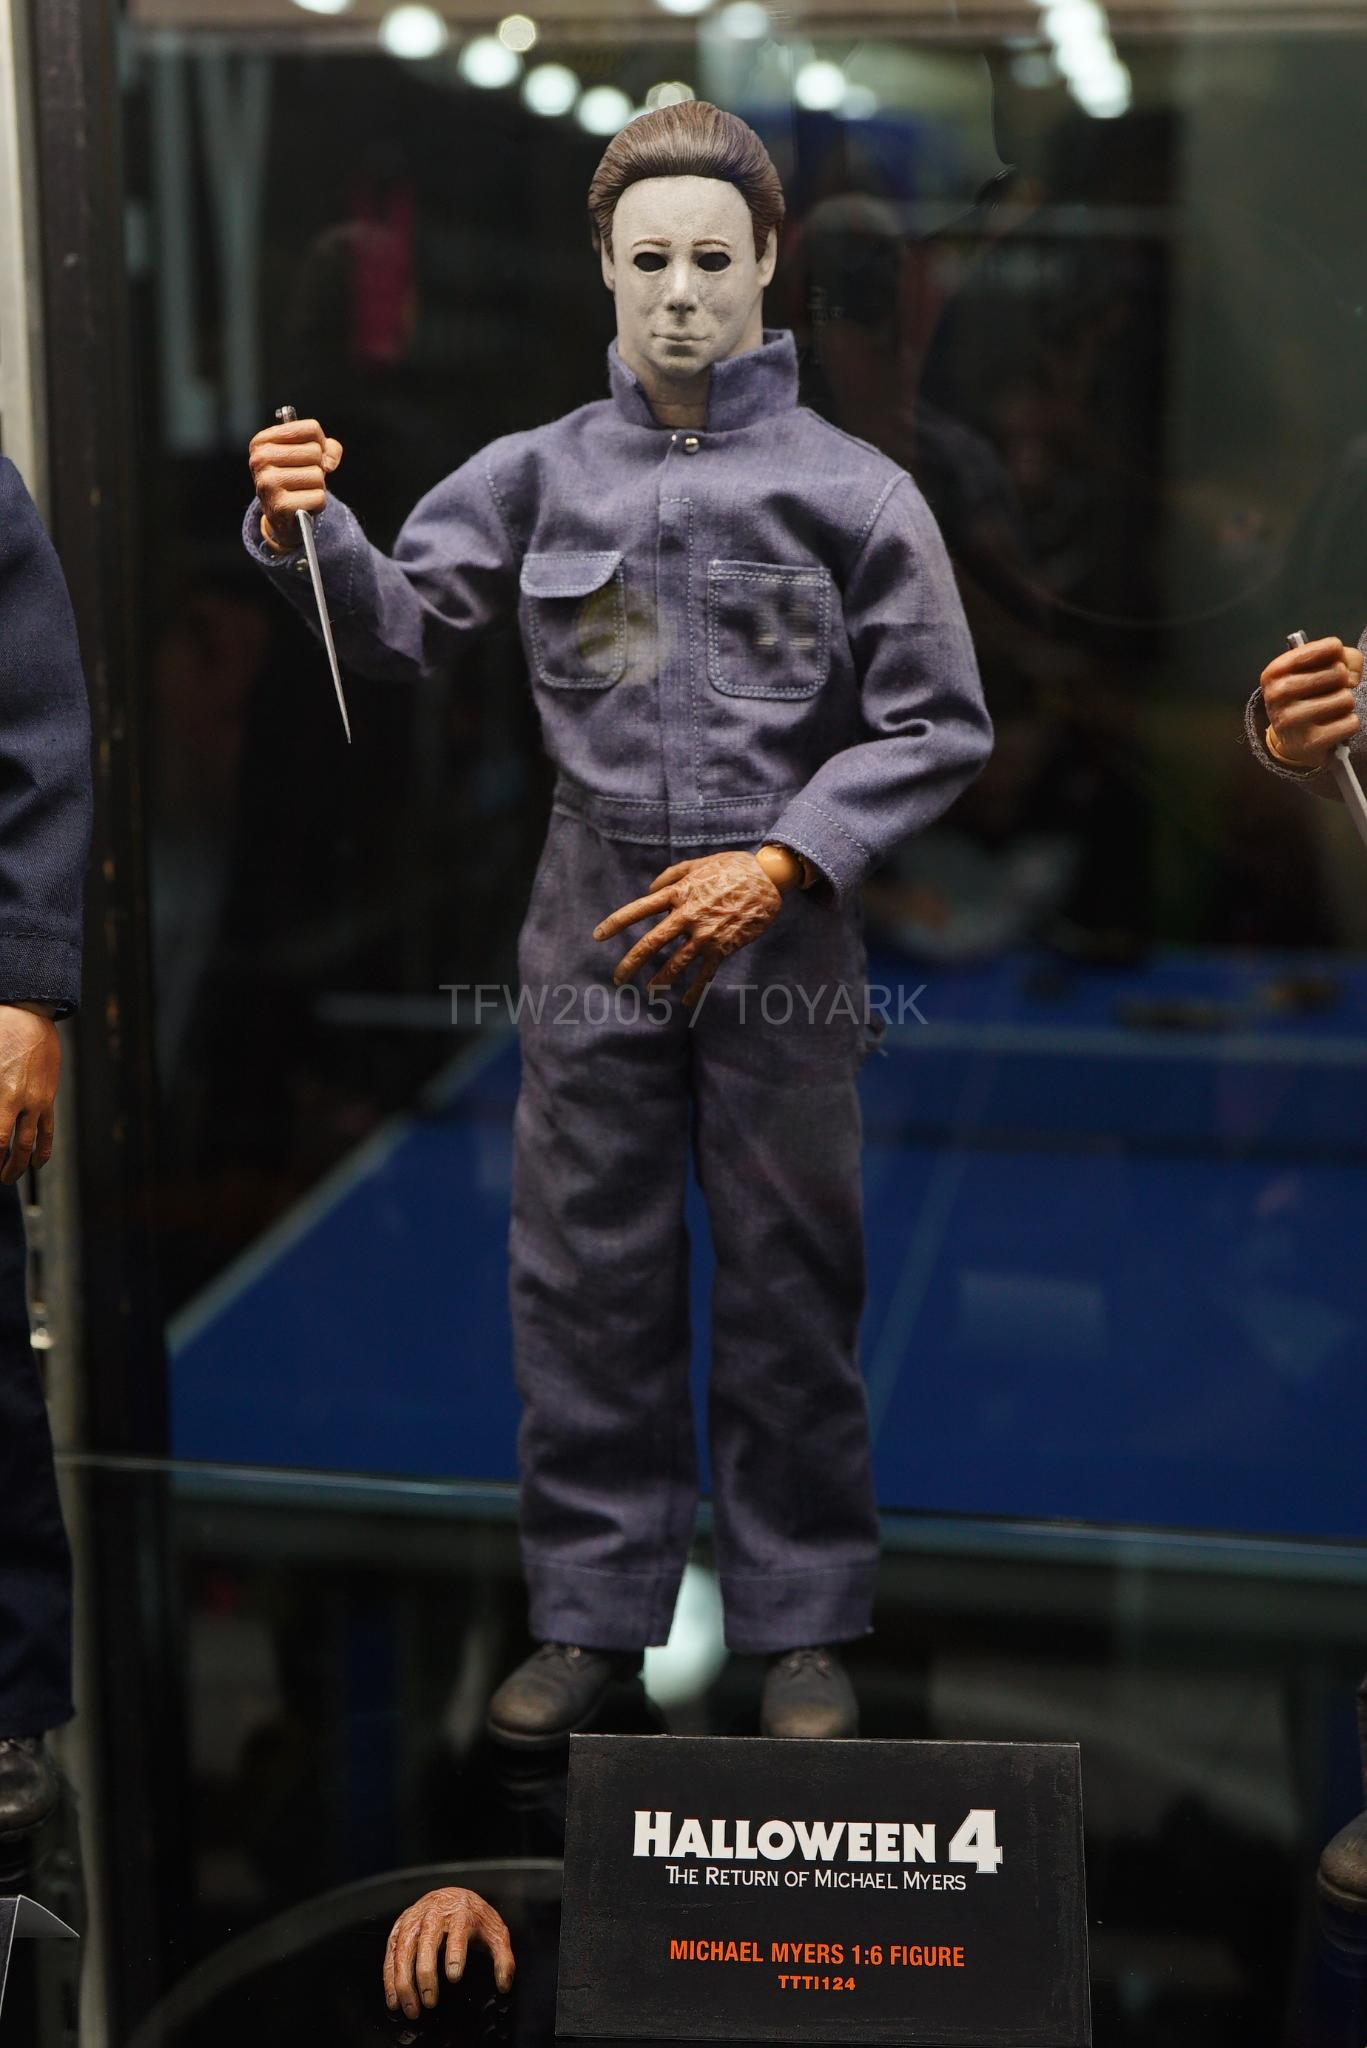 2020 Halloween Michael Myers Figure Toy Fair 2020   Trick or Treat Studios 1/6 Scale Figures, Busts